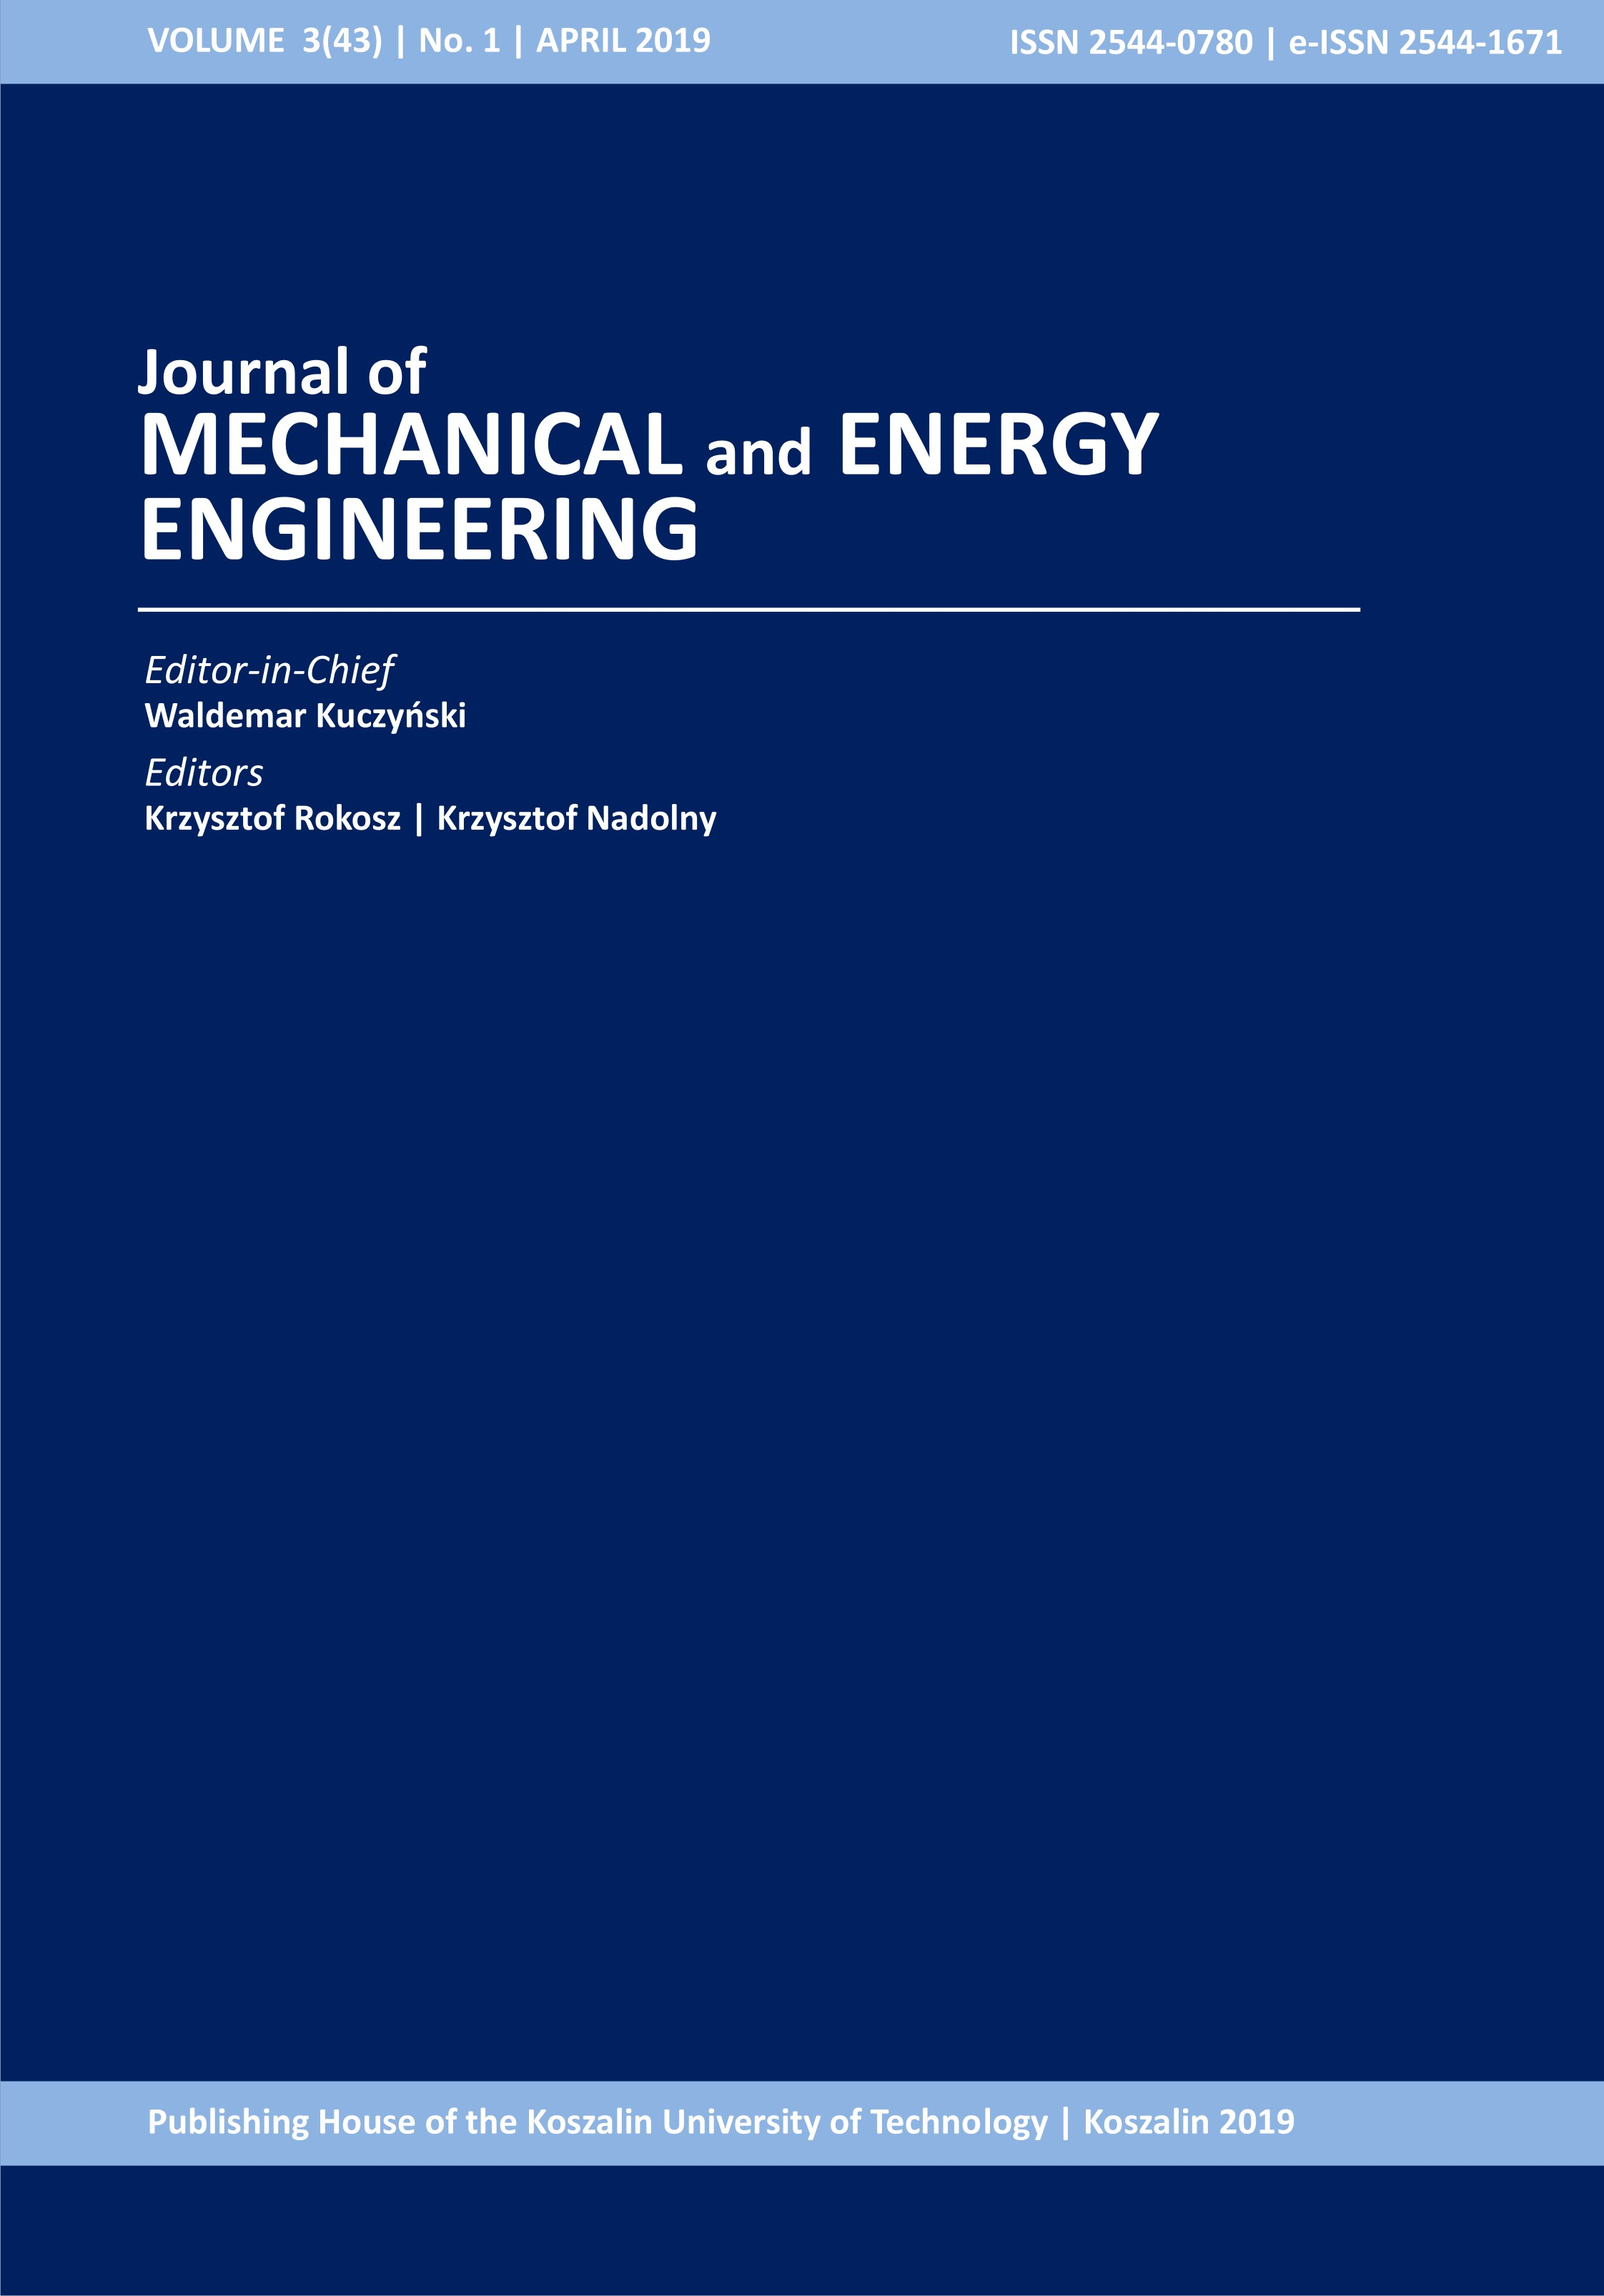 JMME 3(1) 2019 front cover